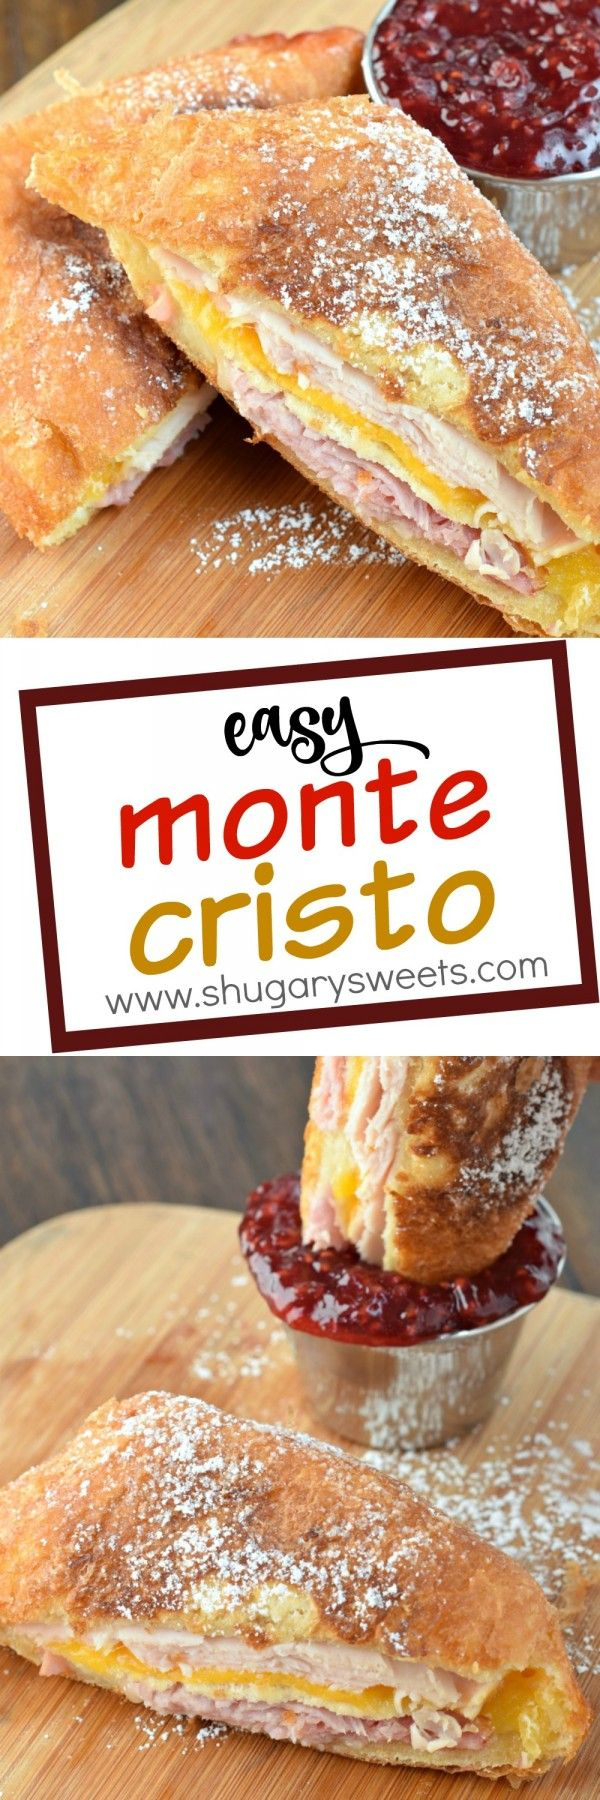 An easy Monte Cristo Sandwich recipe! Never had one? This is the recipe to try first!